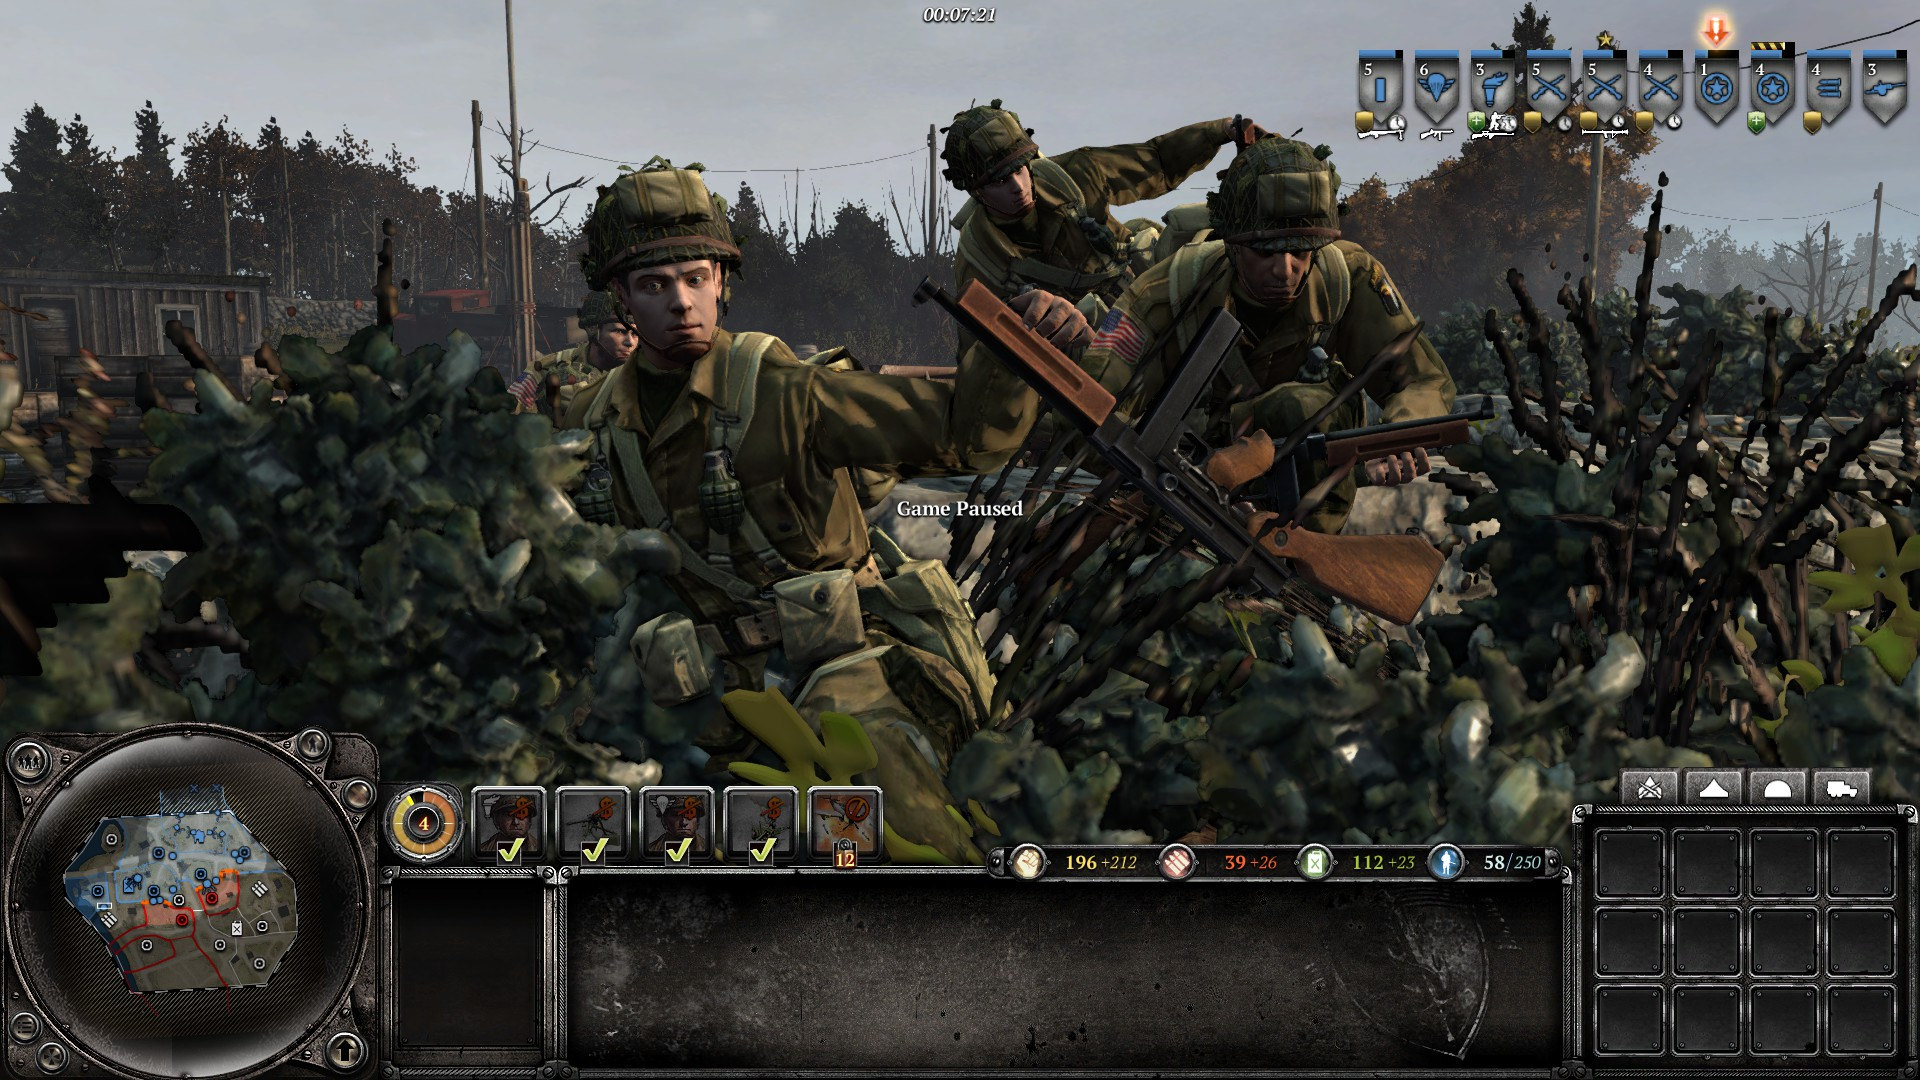 Steam Company Of Heroes 2